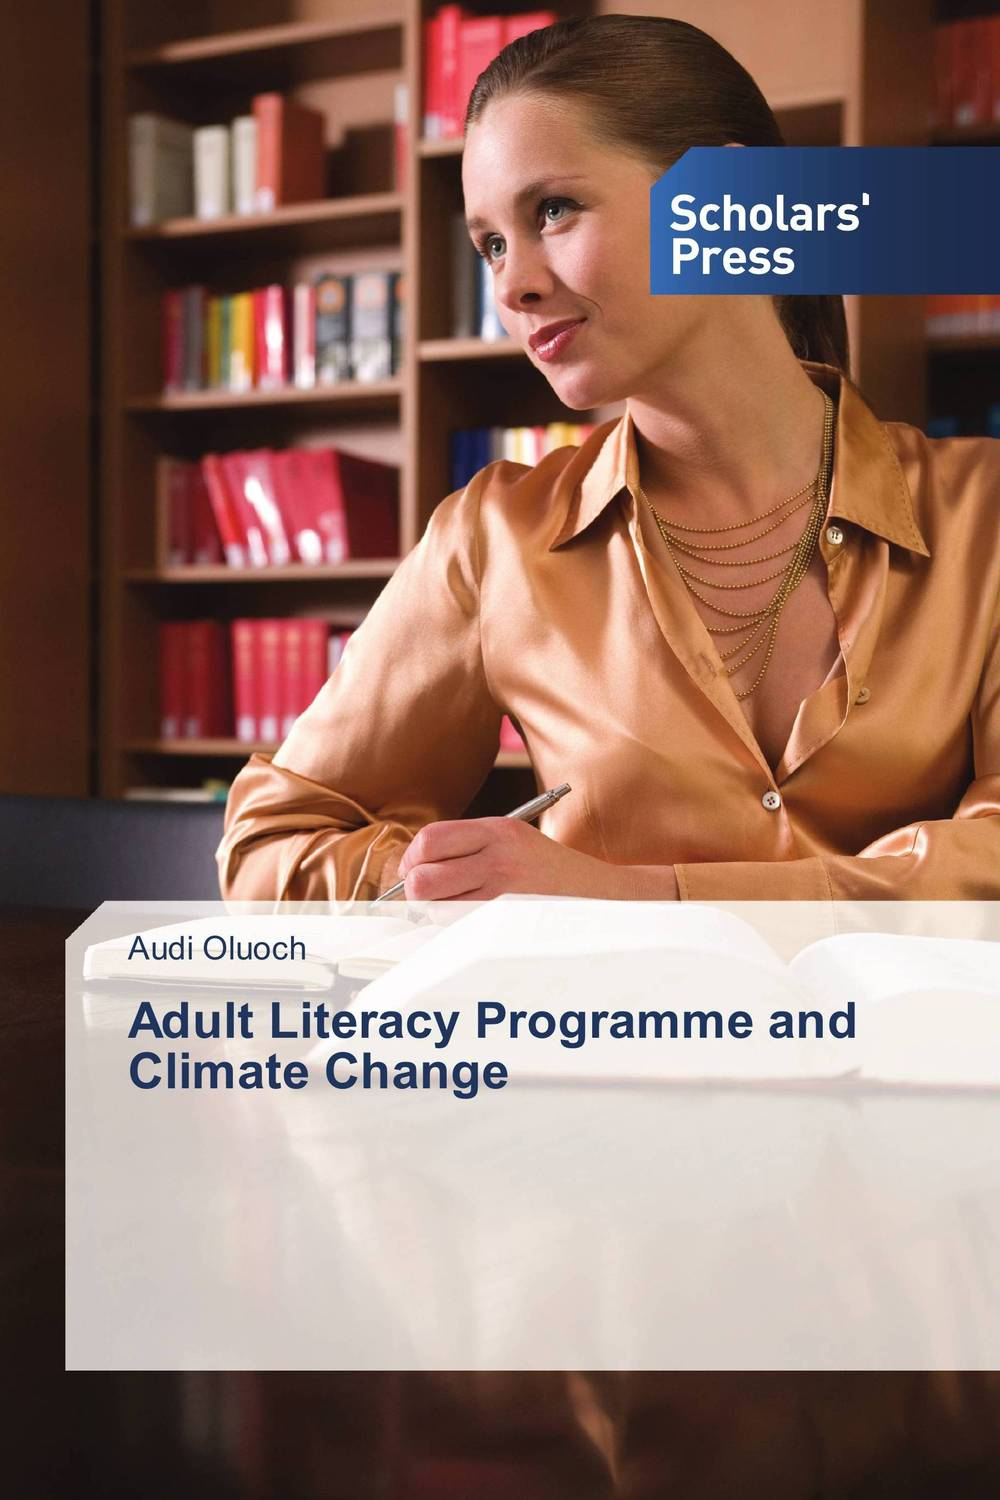 Adult Literacy Programme and Climate Change reading literacy for adolescents